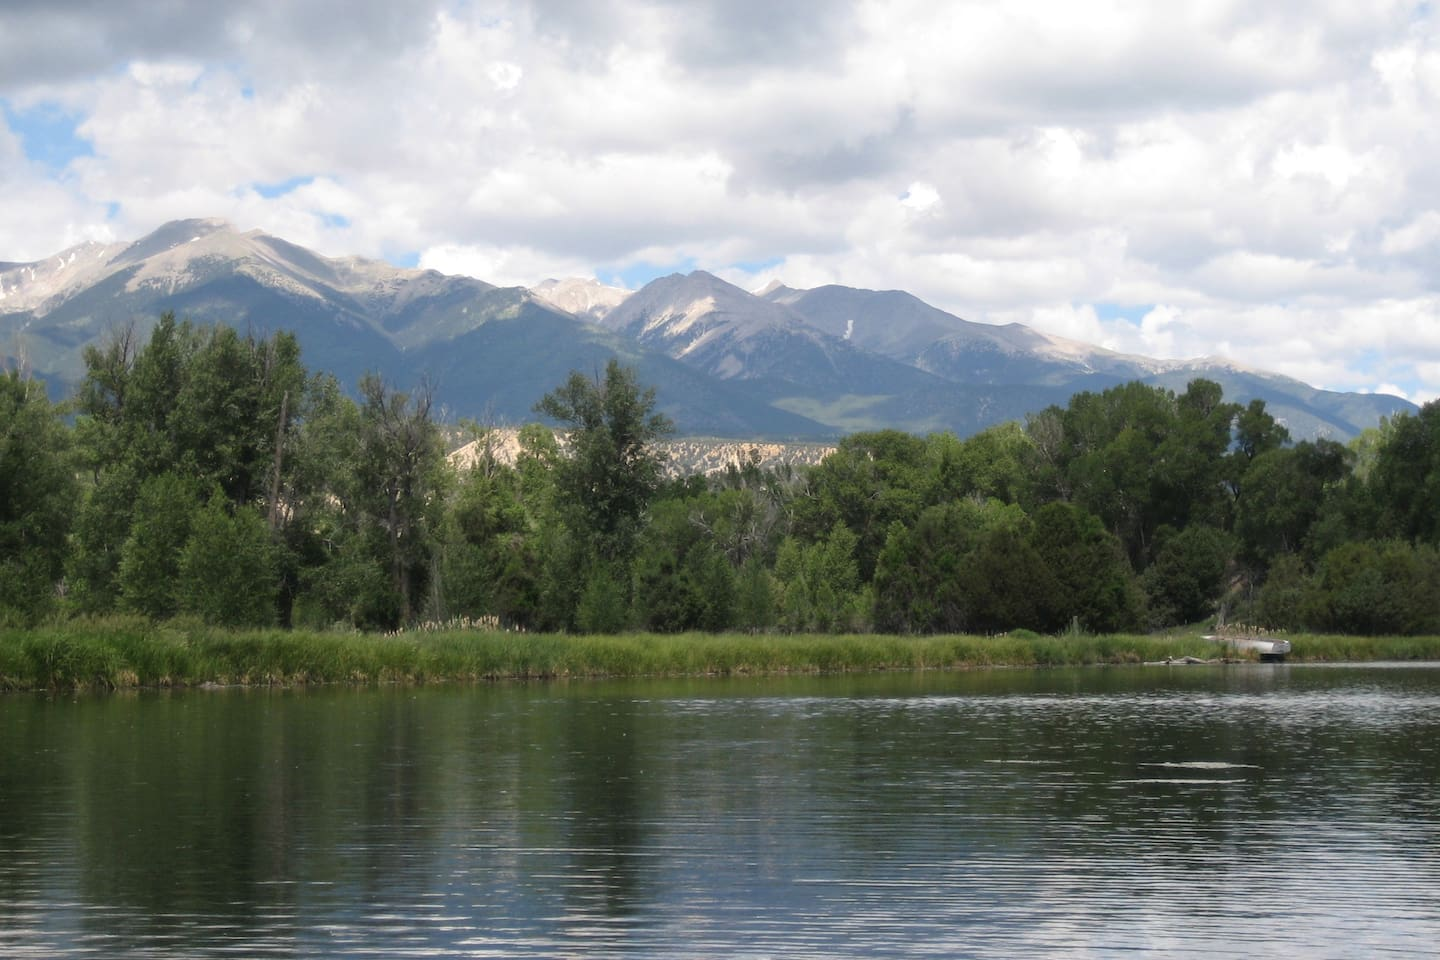 Stocked trout pond and breathtaking views of the Collegiate Peaks